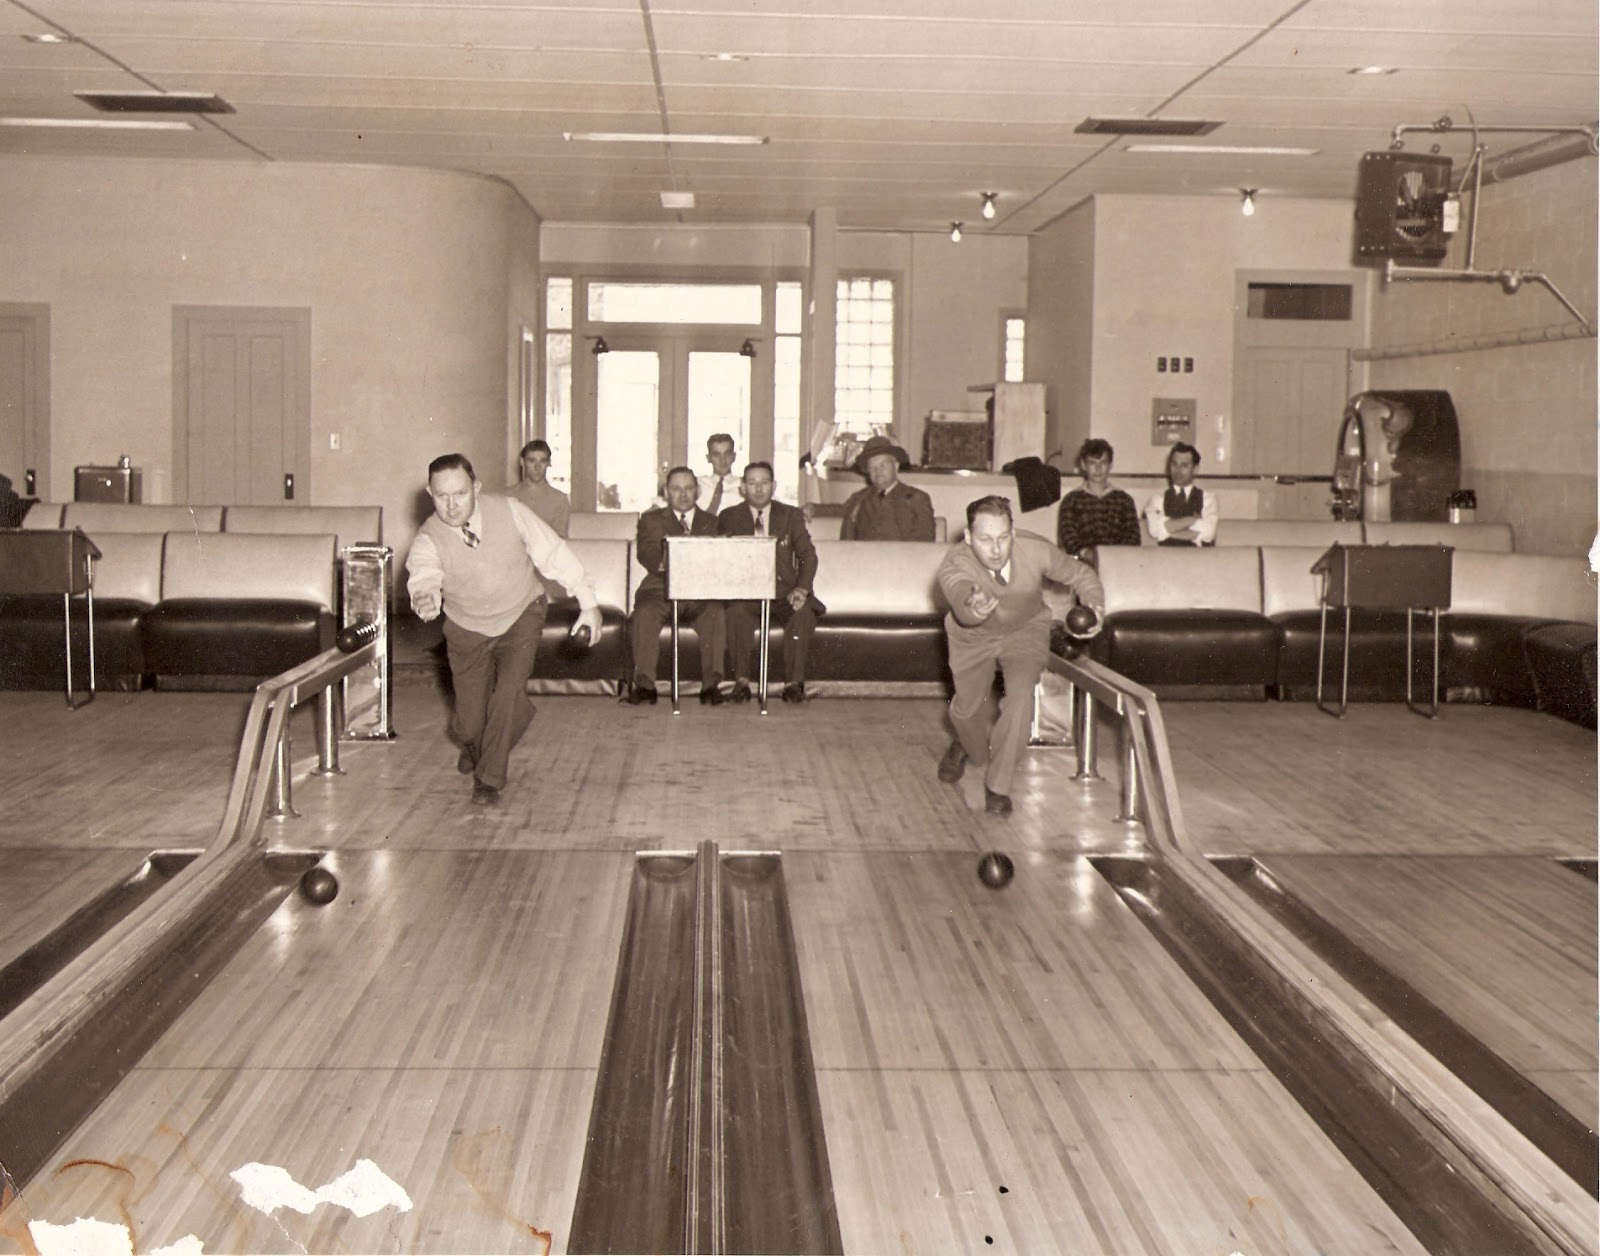 the history of bowling About track track bowling was founded as star track bowling in solon, ohio in the 1970's with the goal of manufacturing balls for the bowler that wanted to be on the cutting edge of technology.